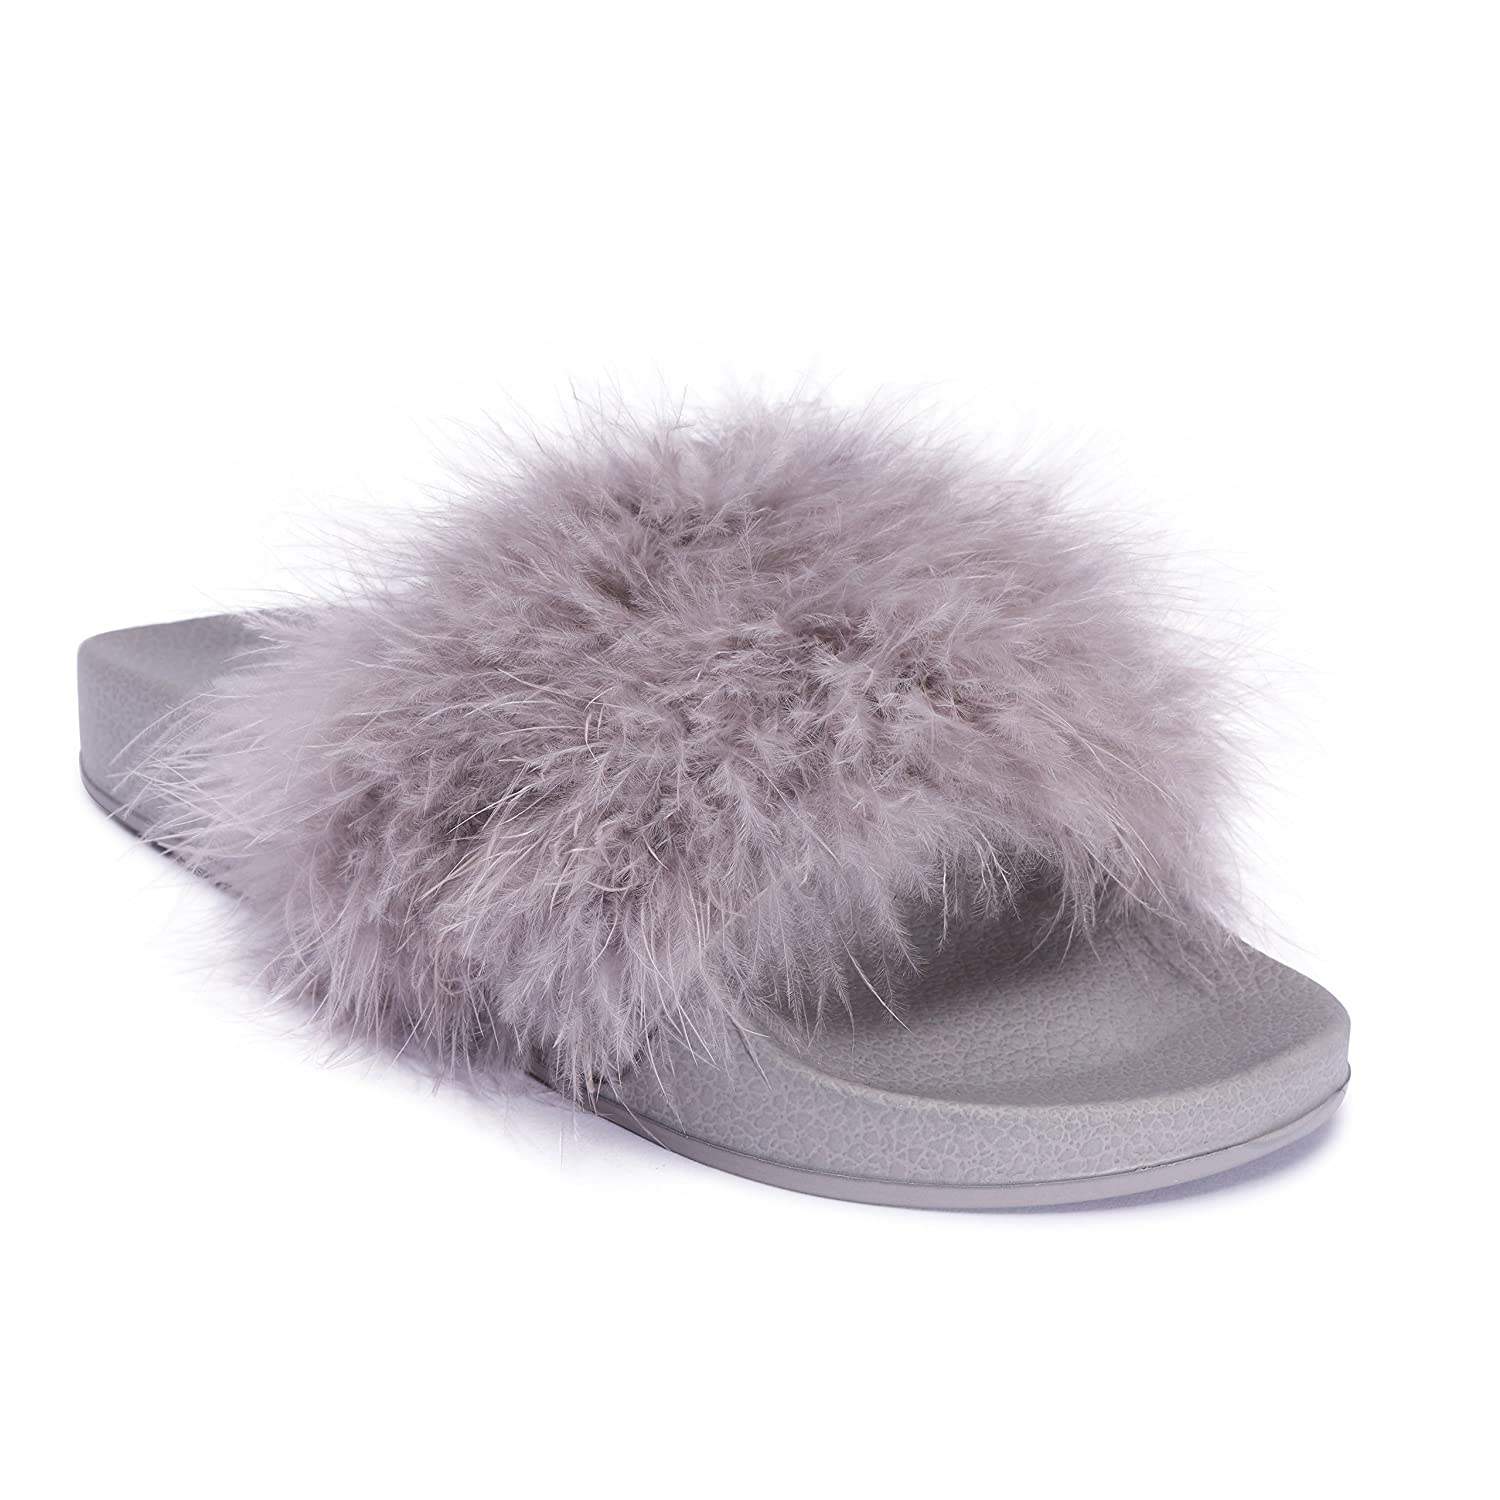 7c2ccdca972 Womens Ladies Grey Faux Fur Feather Marabou Slip On Fluffy Mules Sliders  Slippers